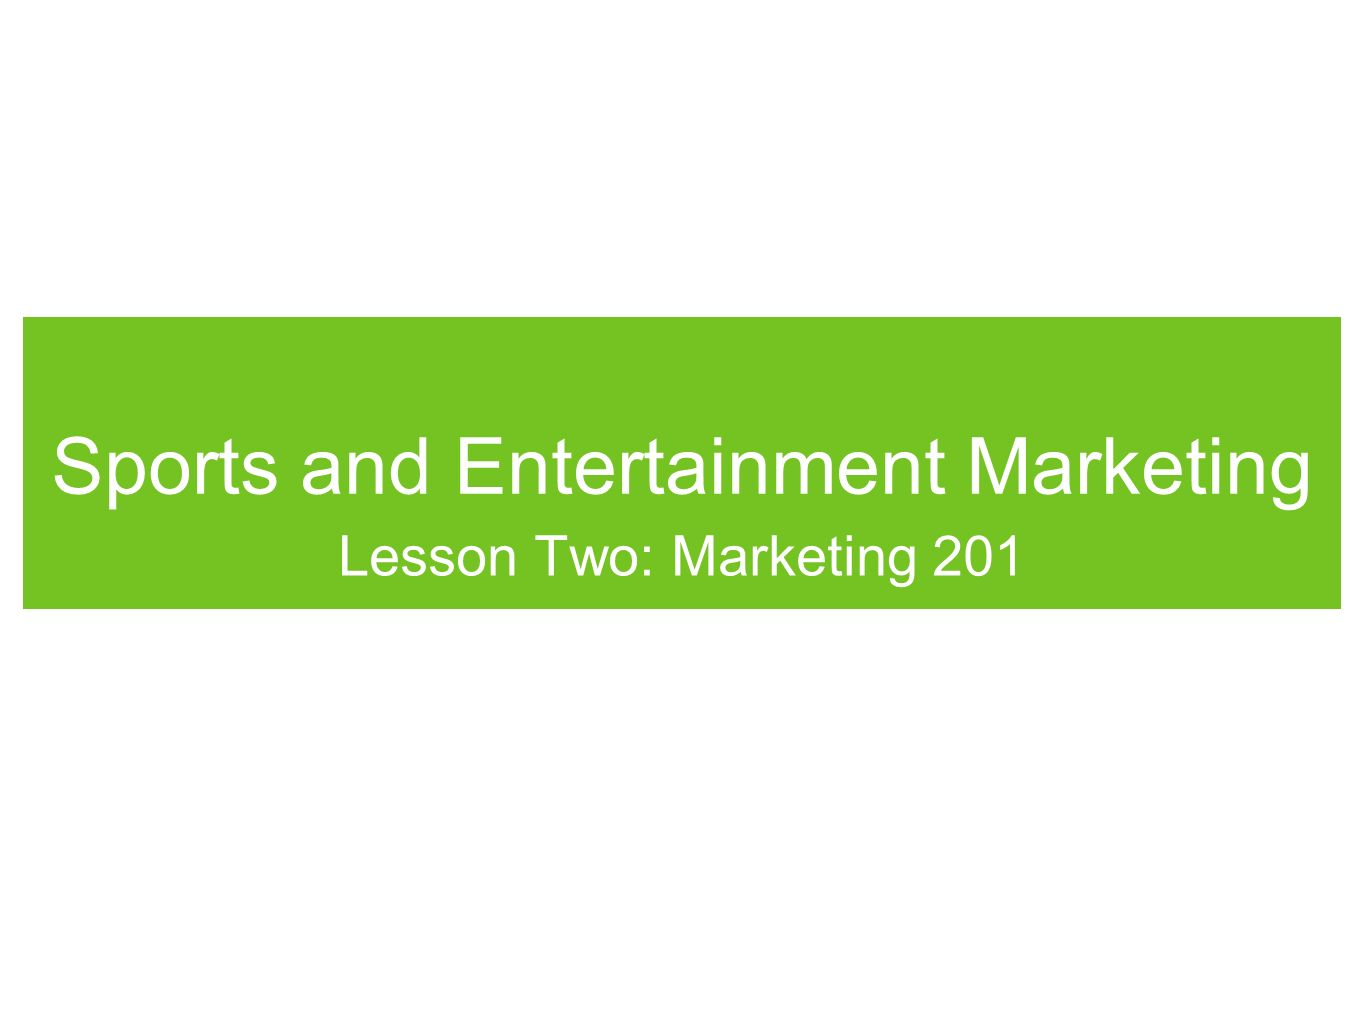 Sports and Entertainment Marketing Lesson Two: Marketing 201